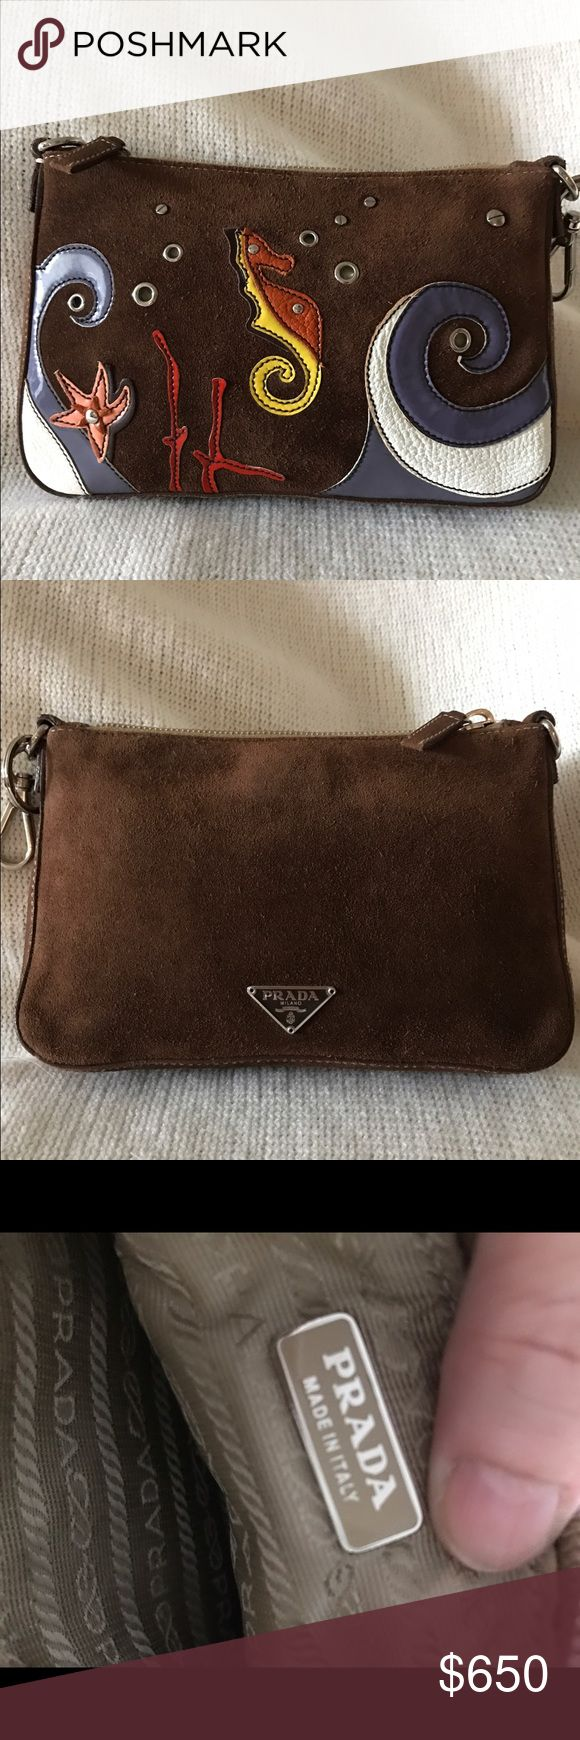 🌊Prada Clutch🌊 Authentic Prada Clutch. Preloved adorable chocolate suede clutch with patent leather seahorse and waves. Quirky rare fun item. Attach a strap if you want to use as a crossbody. It has a key ring and clasp on one end. Outside is clean. Inside has a few smudge marks from light use. No trades! Silver hardware Prada Bags Clutches & Wristlets